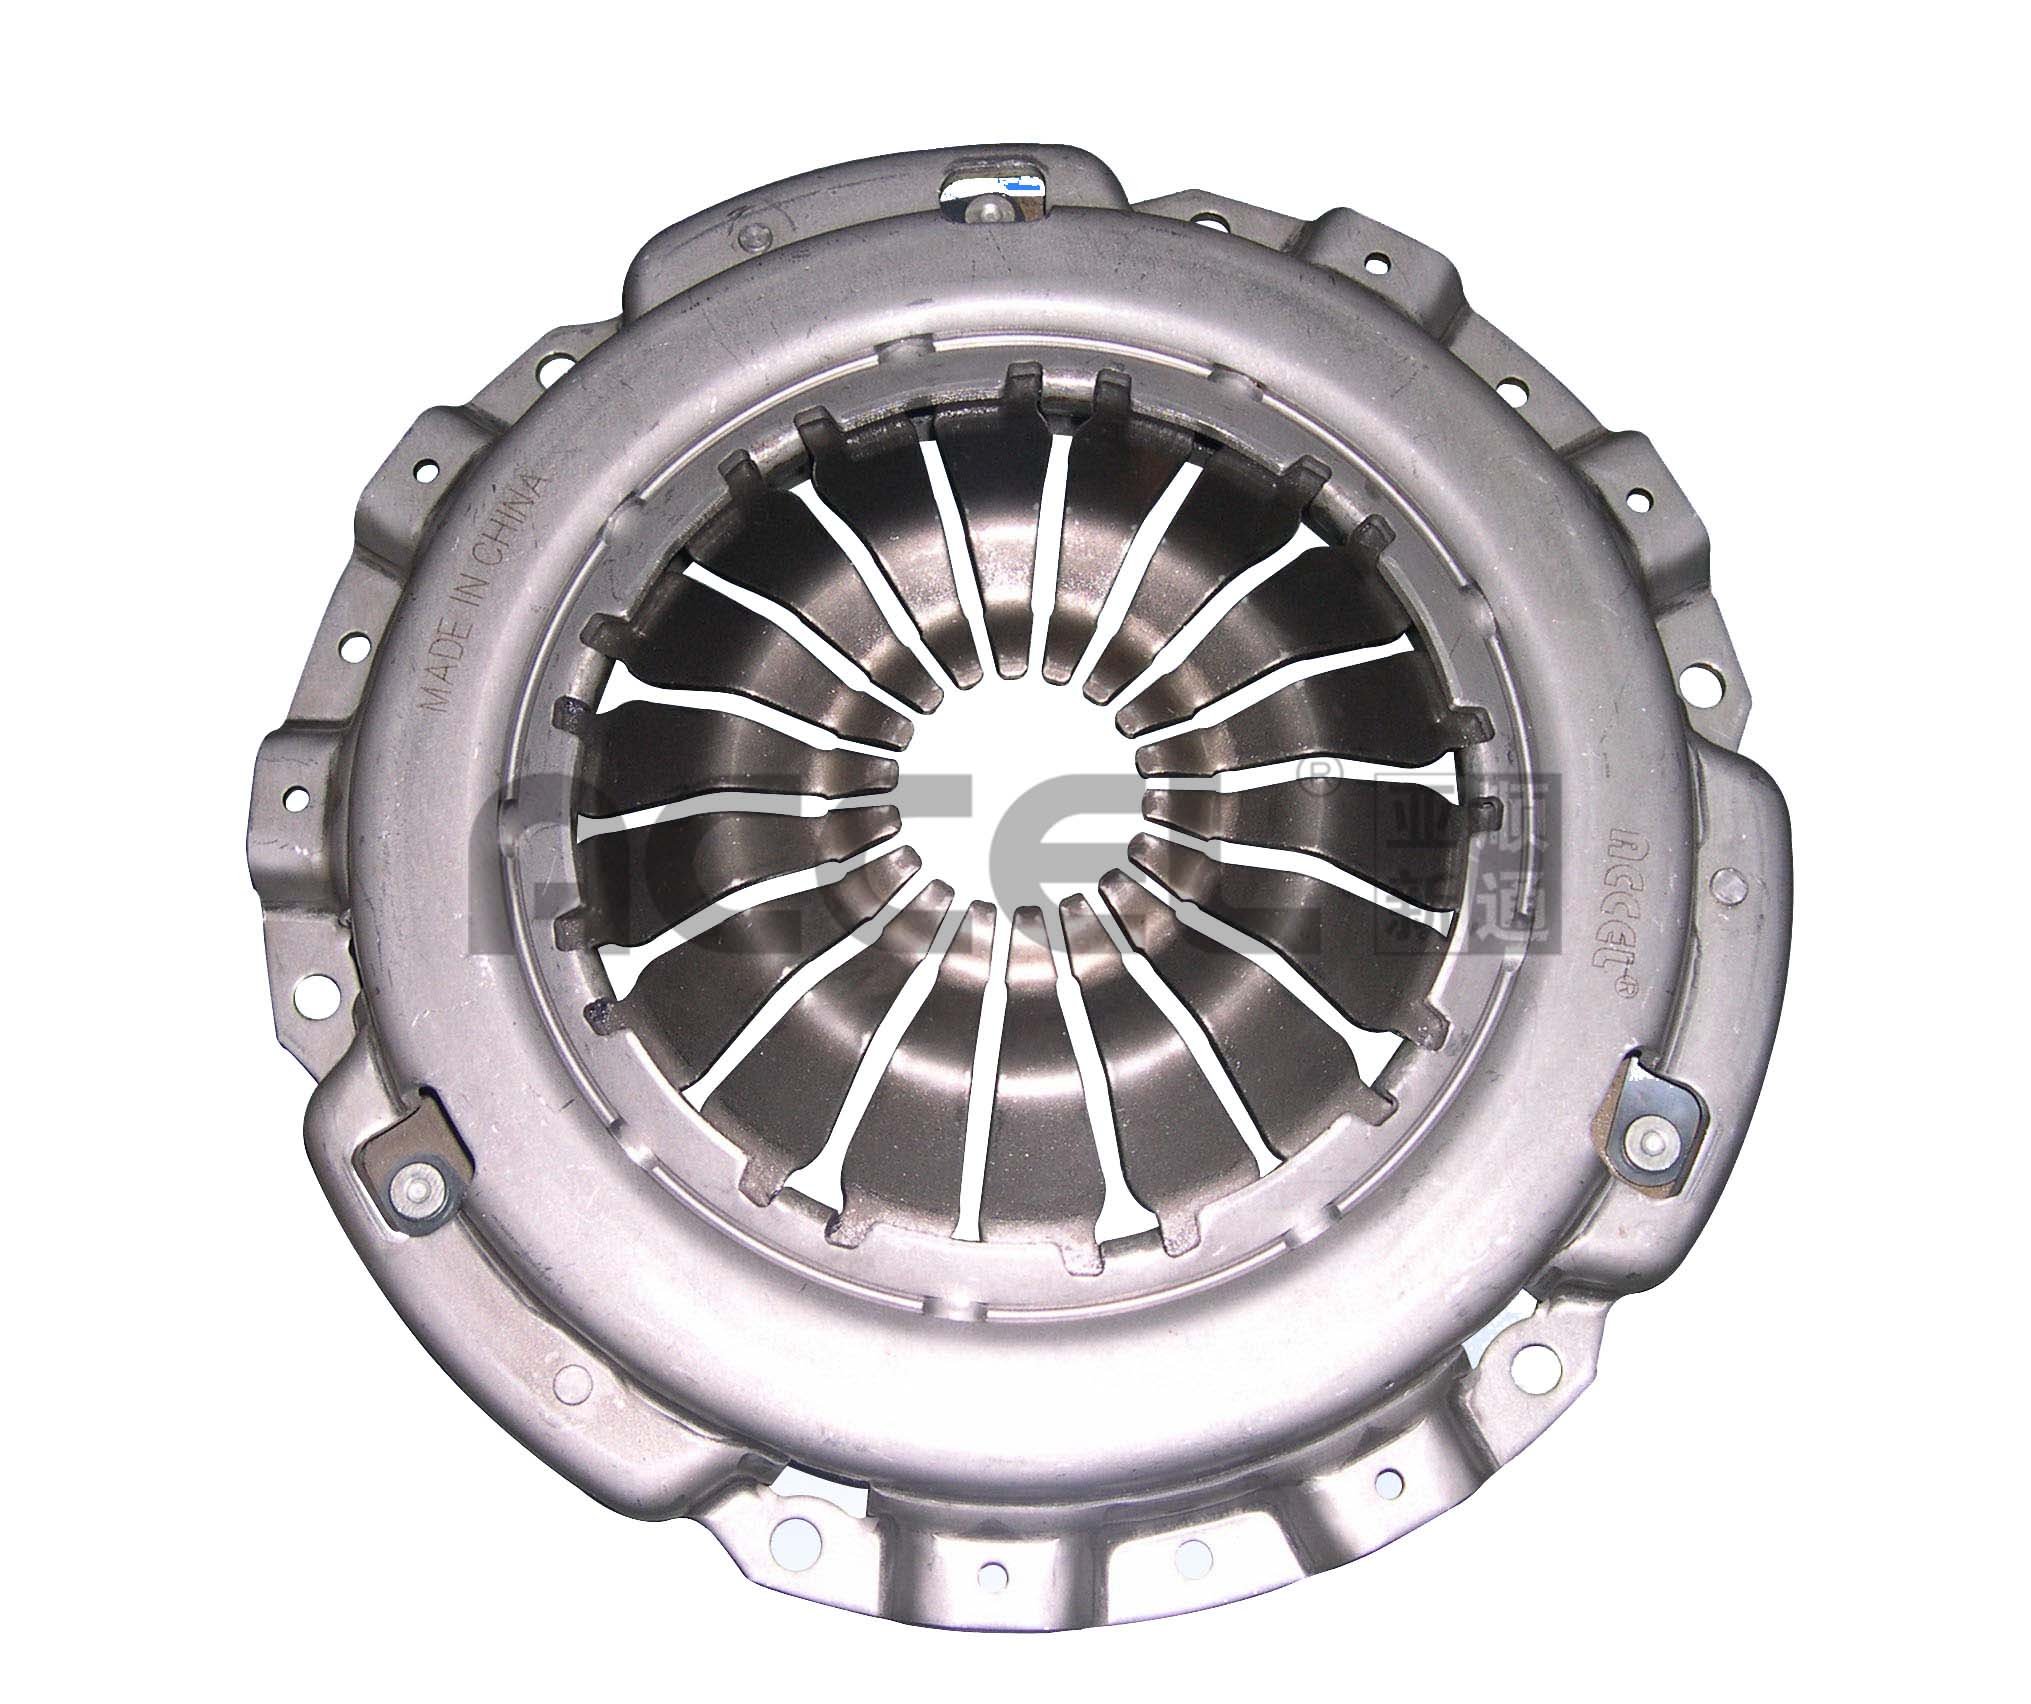 Clutch Cover/OE:340 550